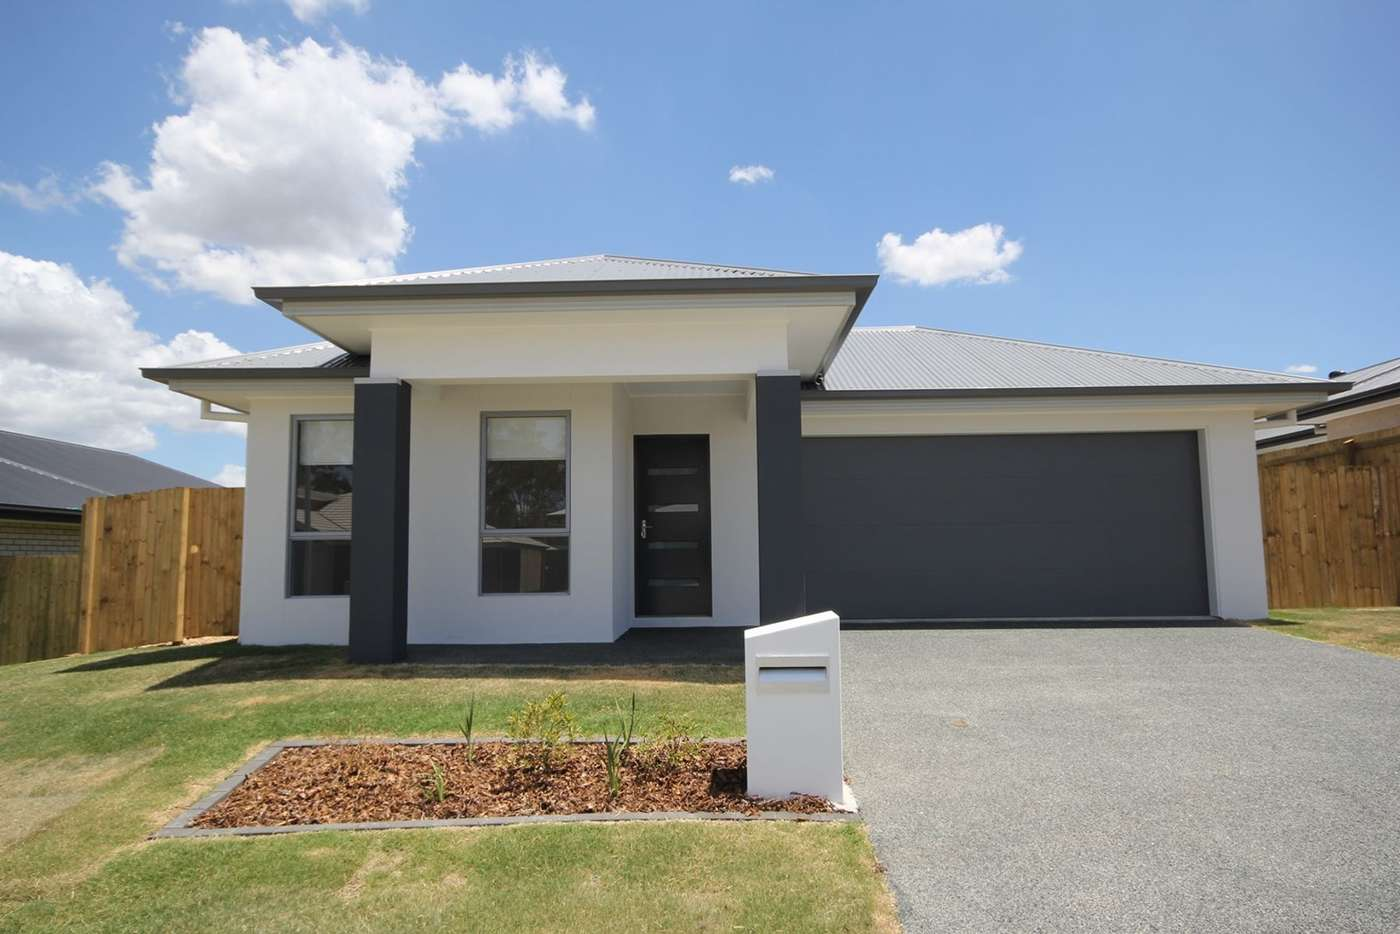 Main view of Homely house listing, 8 Butterfly Way, Ripley QLD 4306